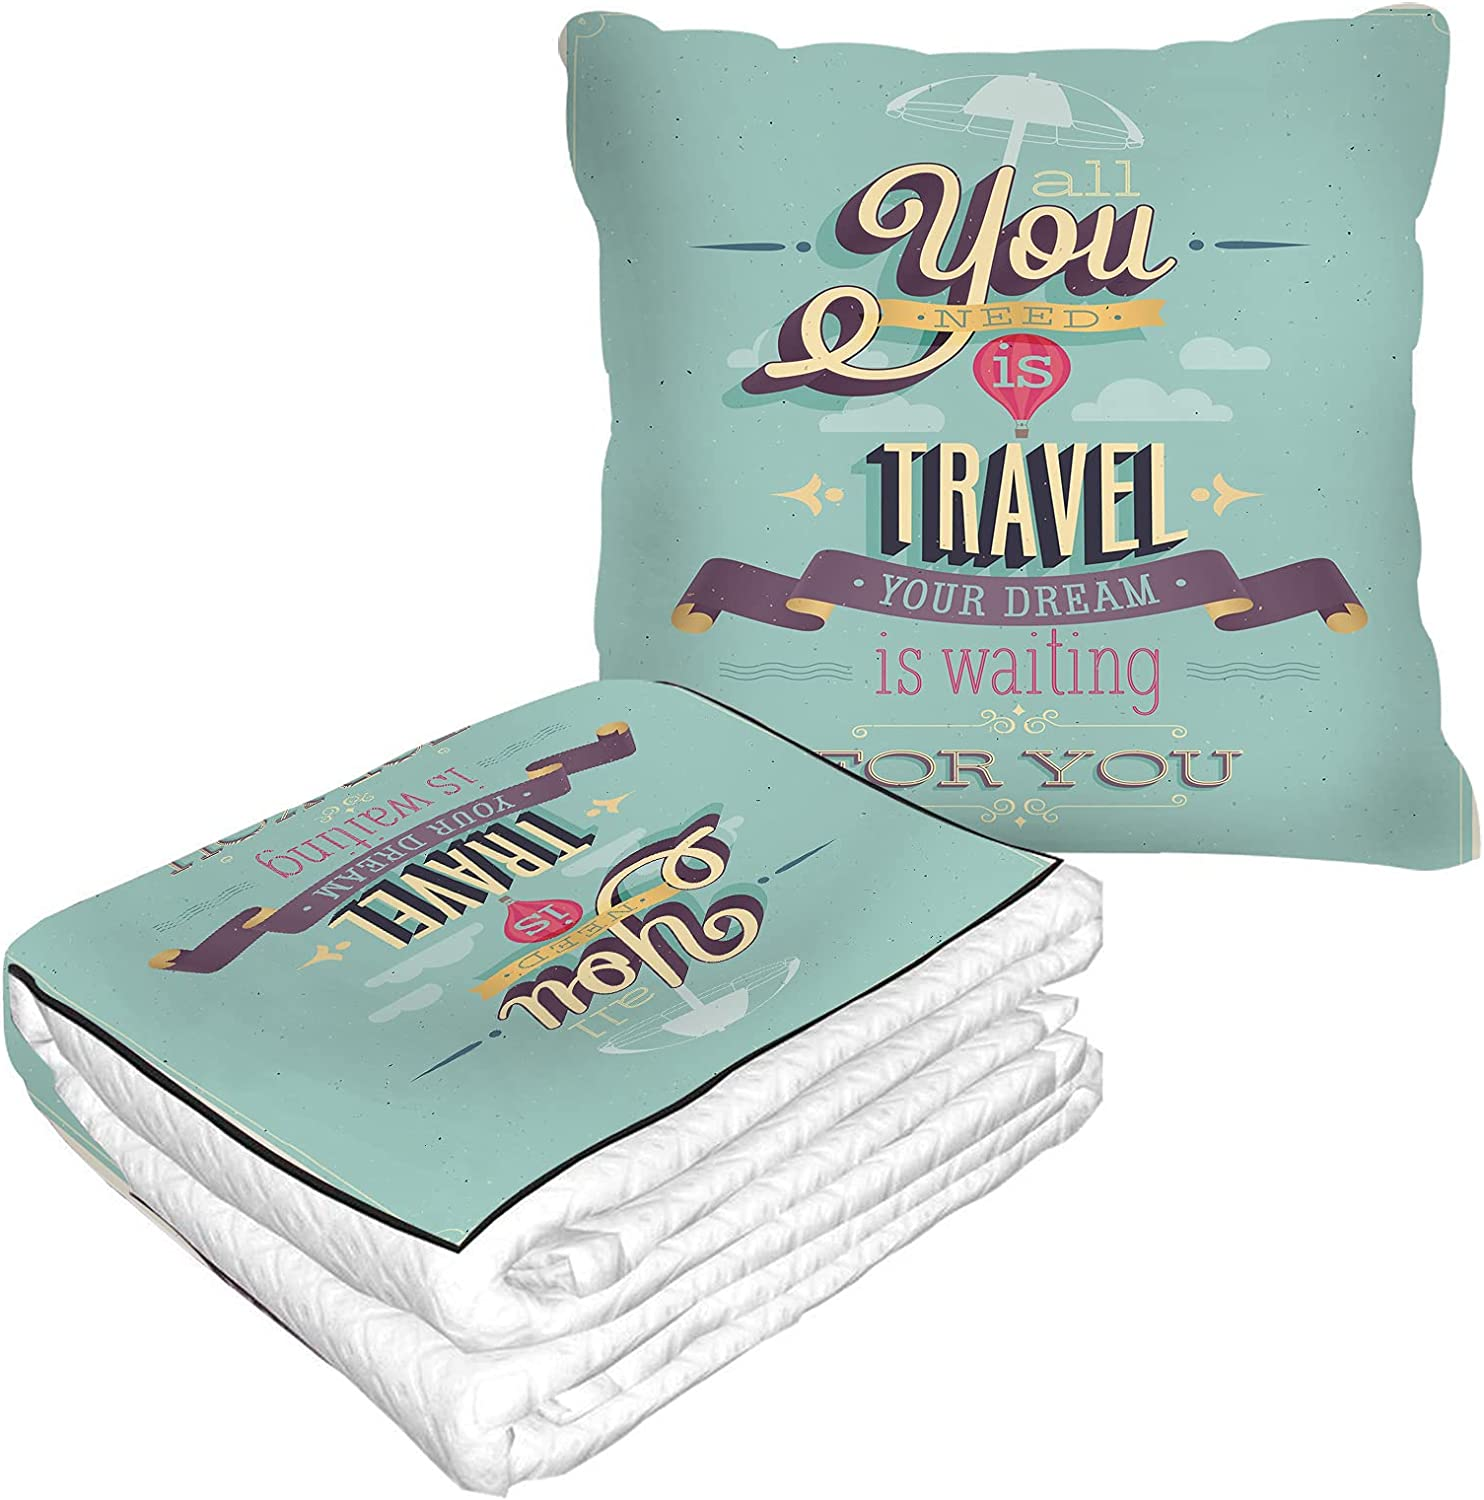 EKOBLA Travel Poster Pillow Blanket Need All You Ranking TOP7 Traveler Selling rankings is